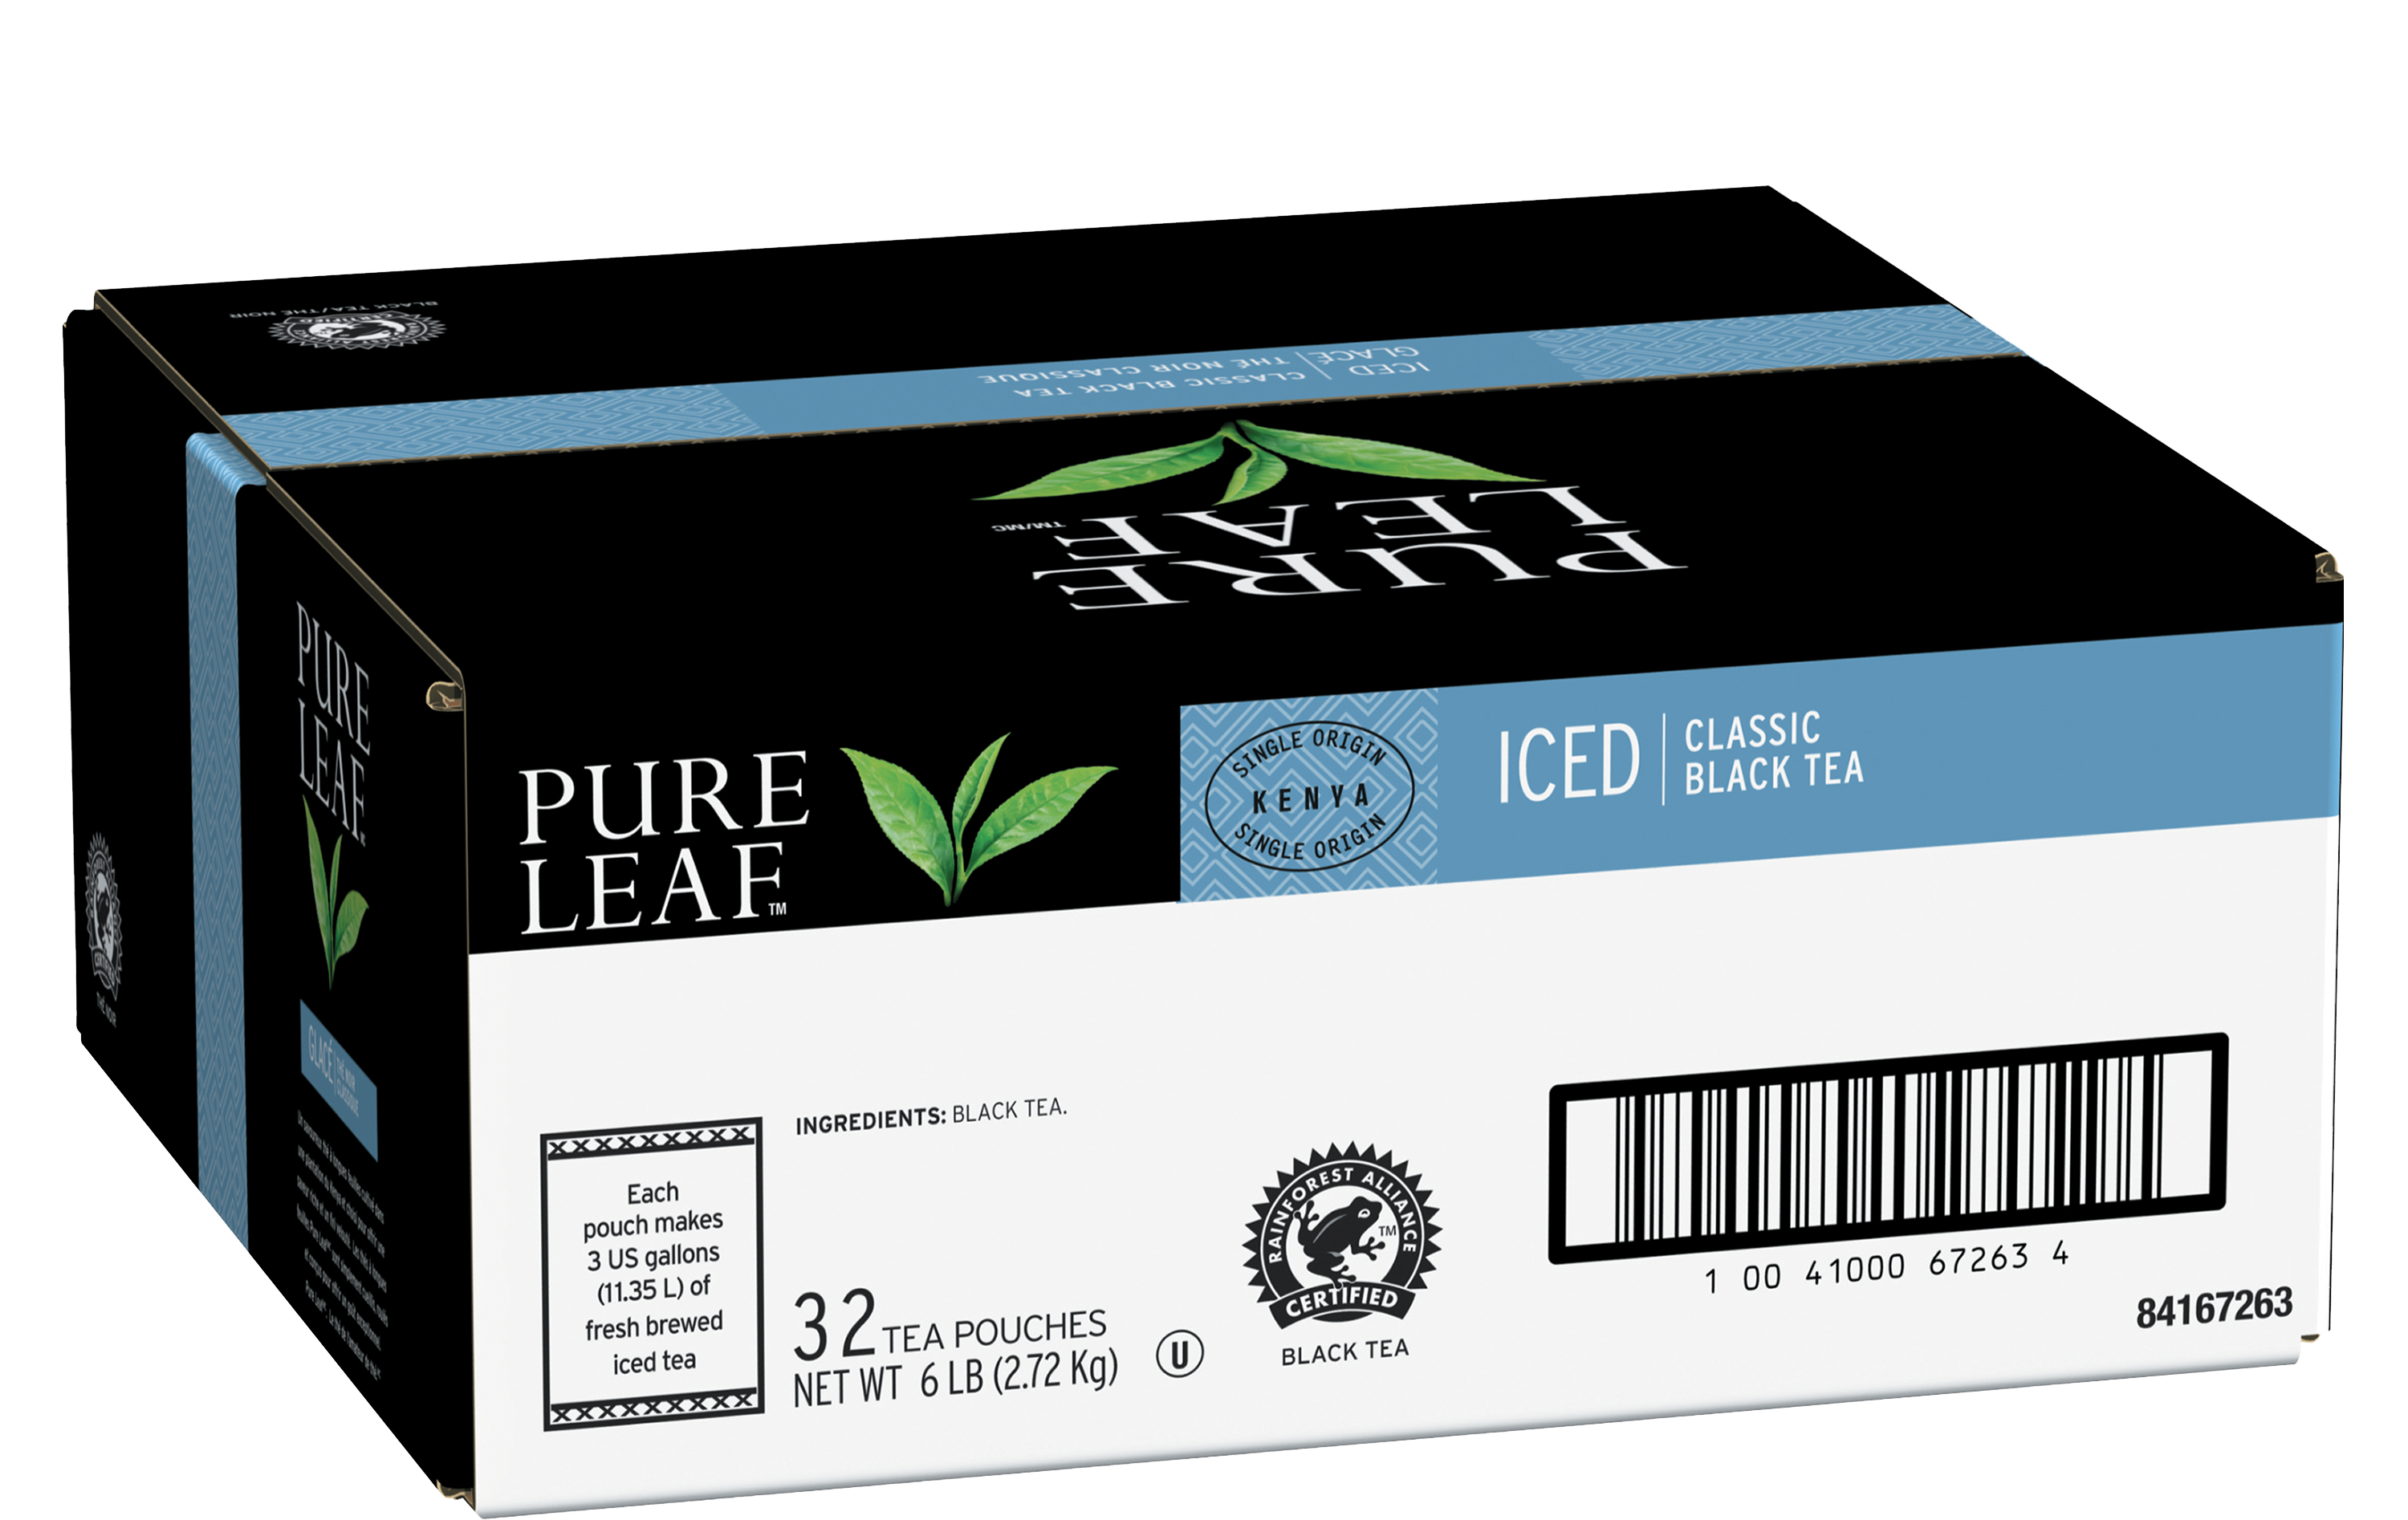 Pure Leafᵀᴹ Iced Loose Tea Pouch Black 3 gallon, 24 count - Pure Leafᵀᴹ Hot Teas match the careful craftsmanship of your menu.